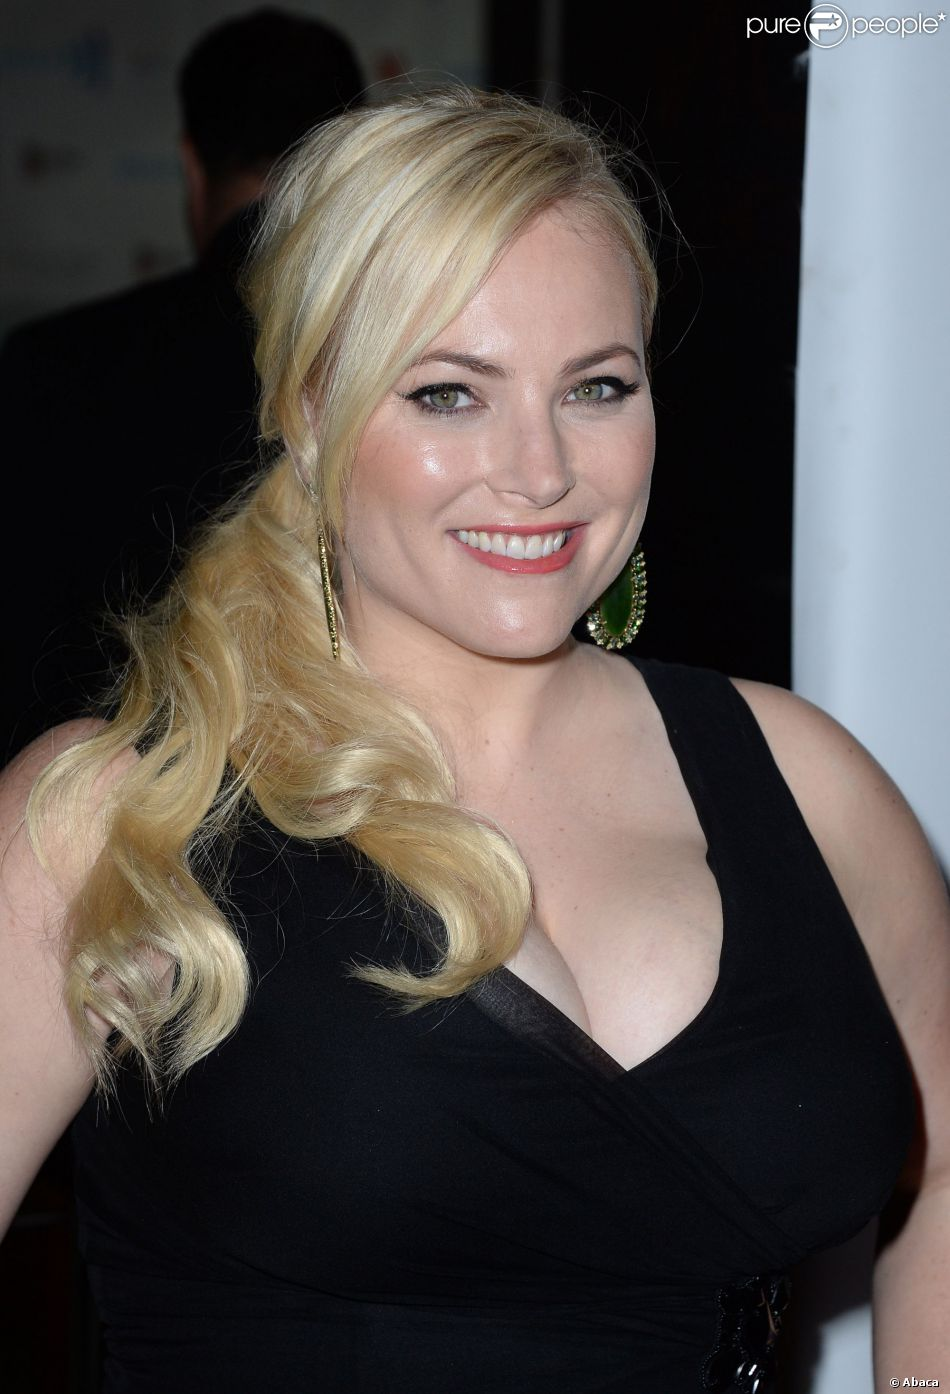 mccain personals Harry smith spoke to sen john mccain's daughter, meghan mccain, about the campaign trail, her father, dating and her clash with ann coulter.